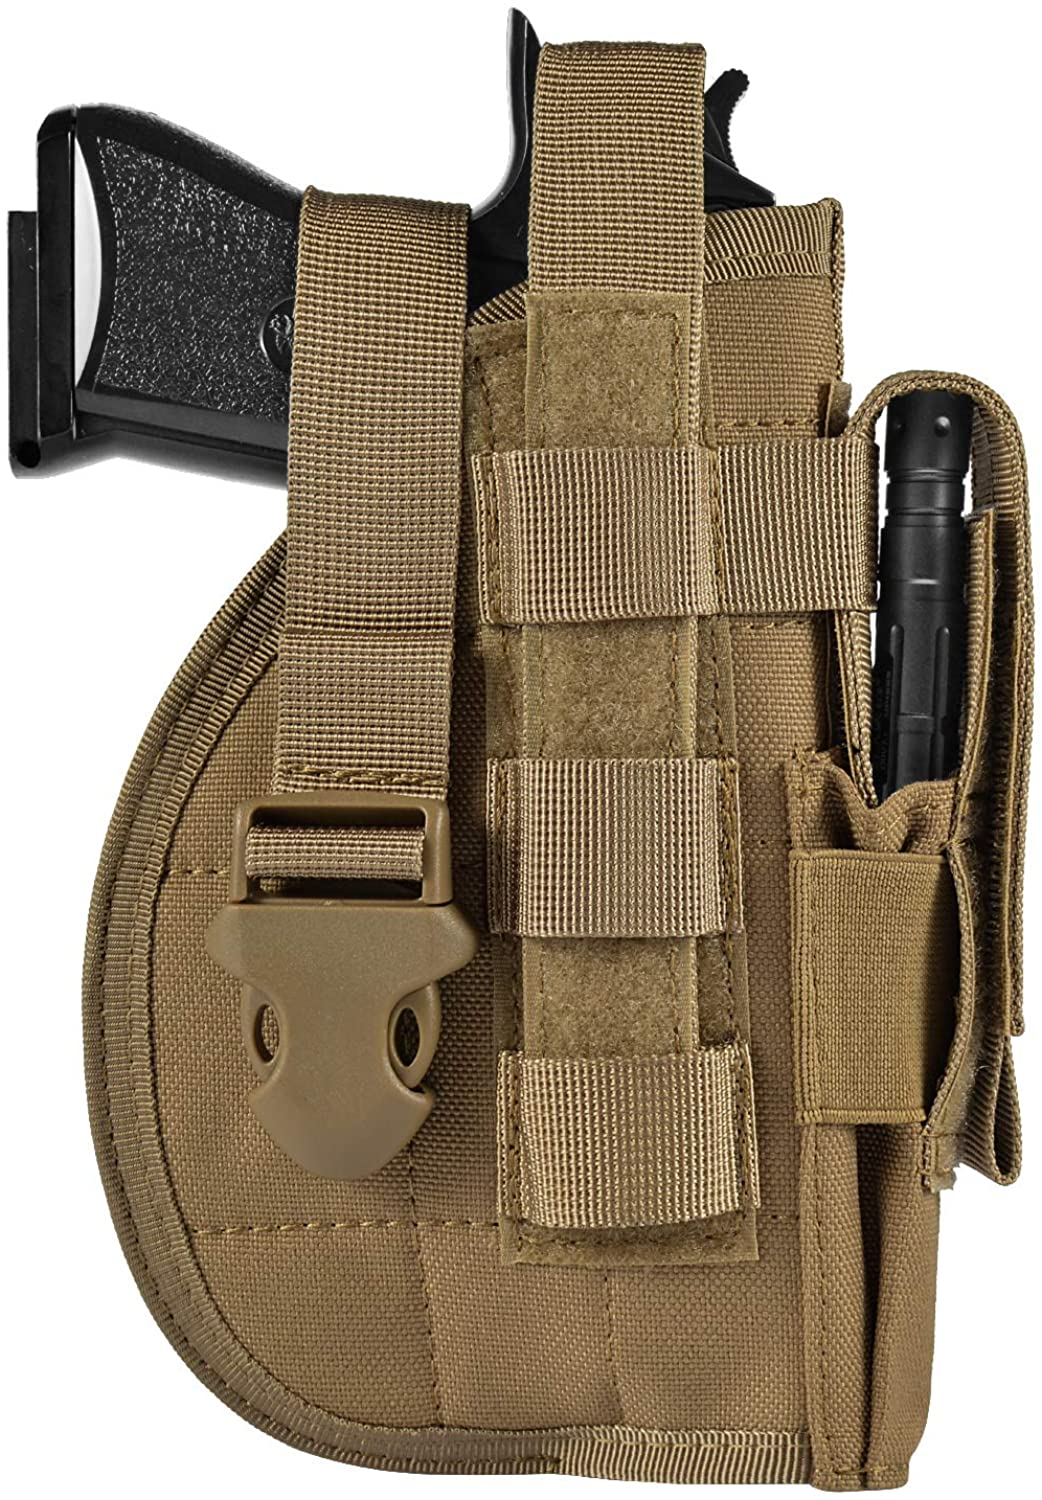 DYJ Tactical Pistol/Gun Molle Belt Holster with Magazine Pouch for Left or Right Handed Shooters S&W M&P Shield Glock 26 30 42